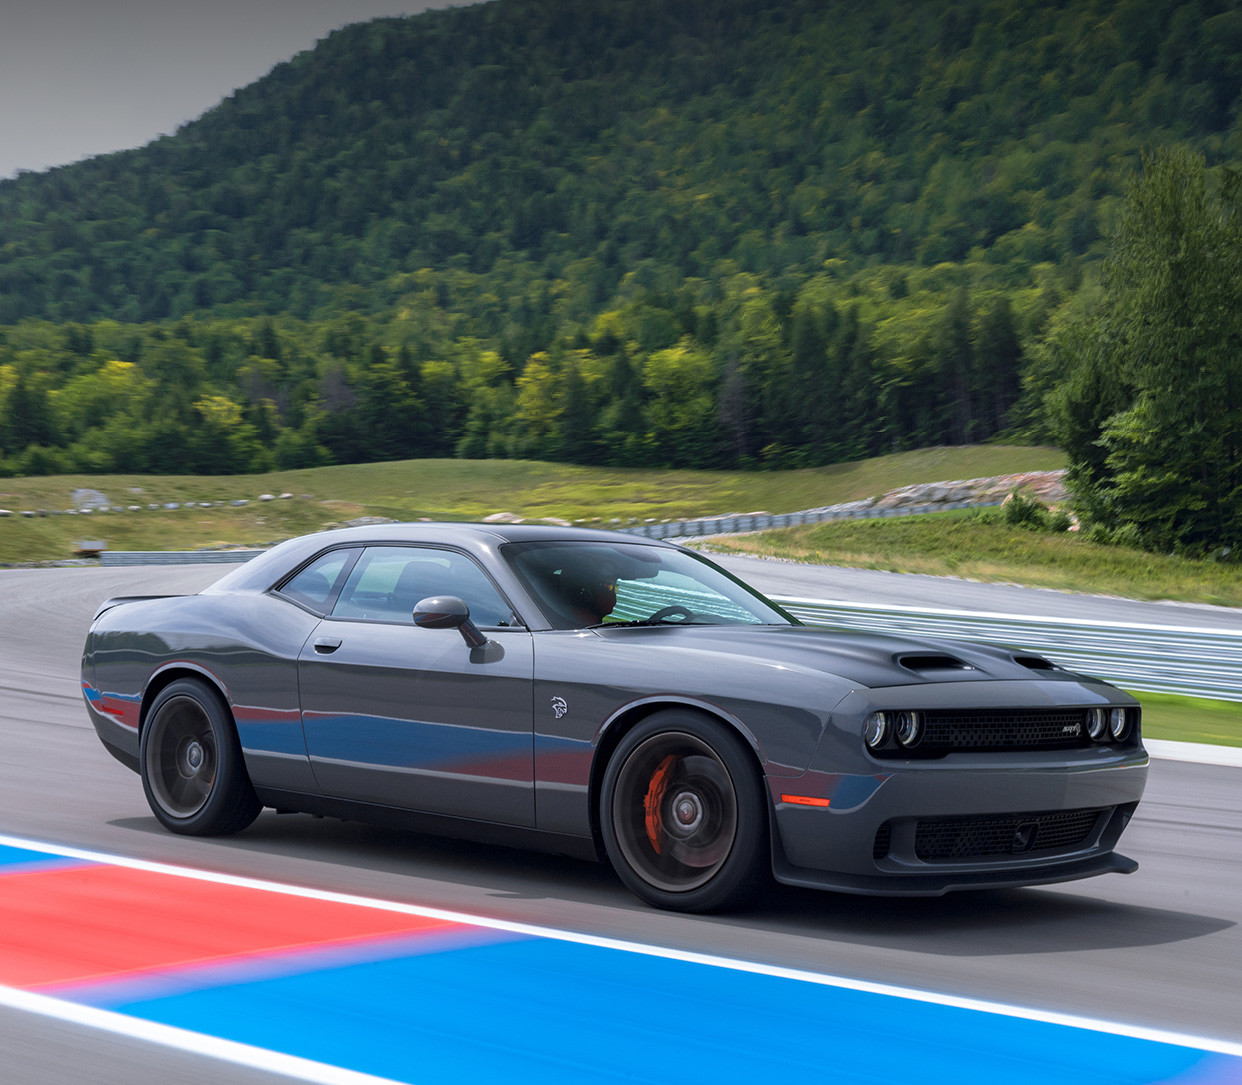 Grey 2019 Dodge Challenger being driven on an outdoor racing track.